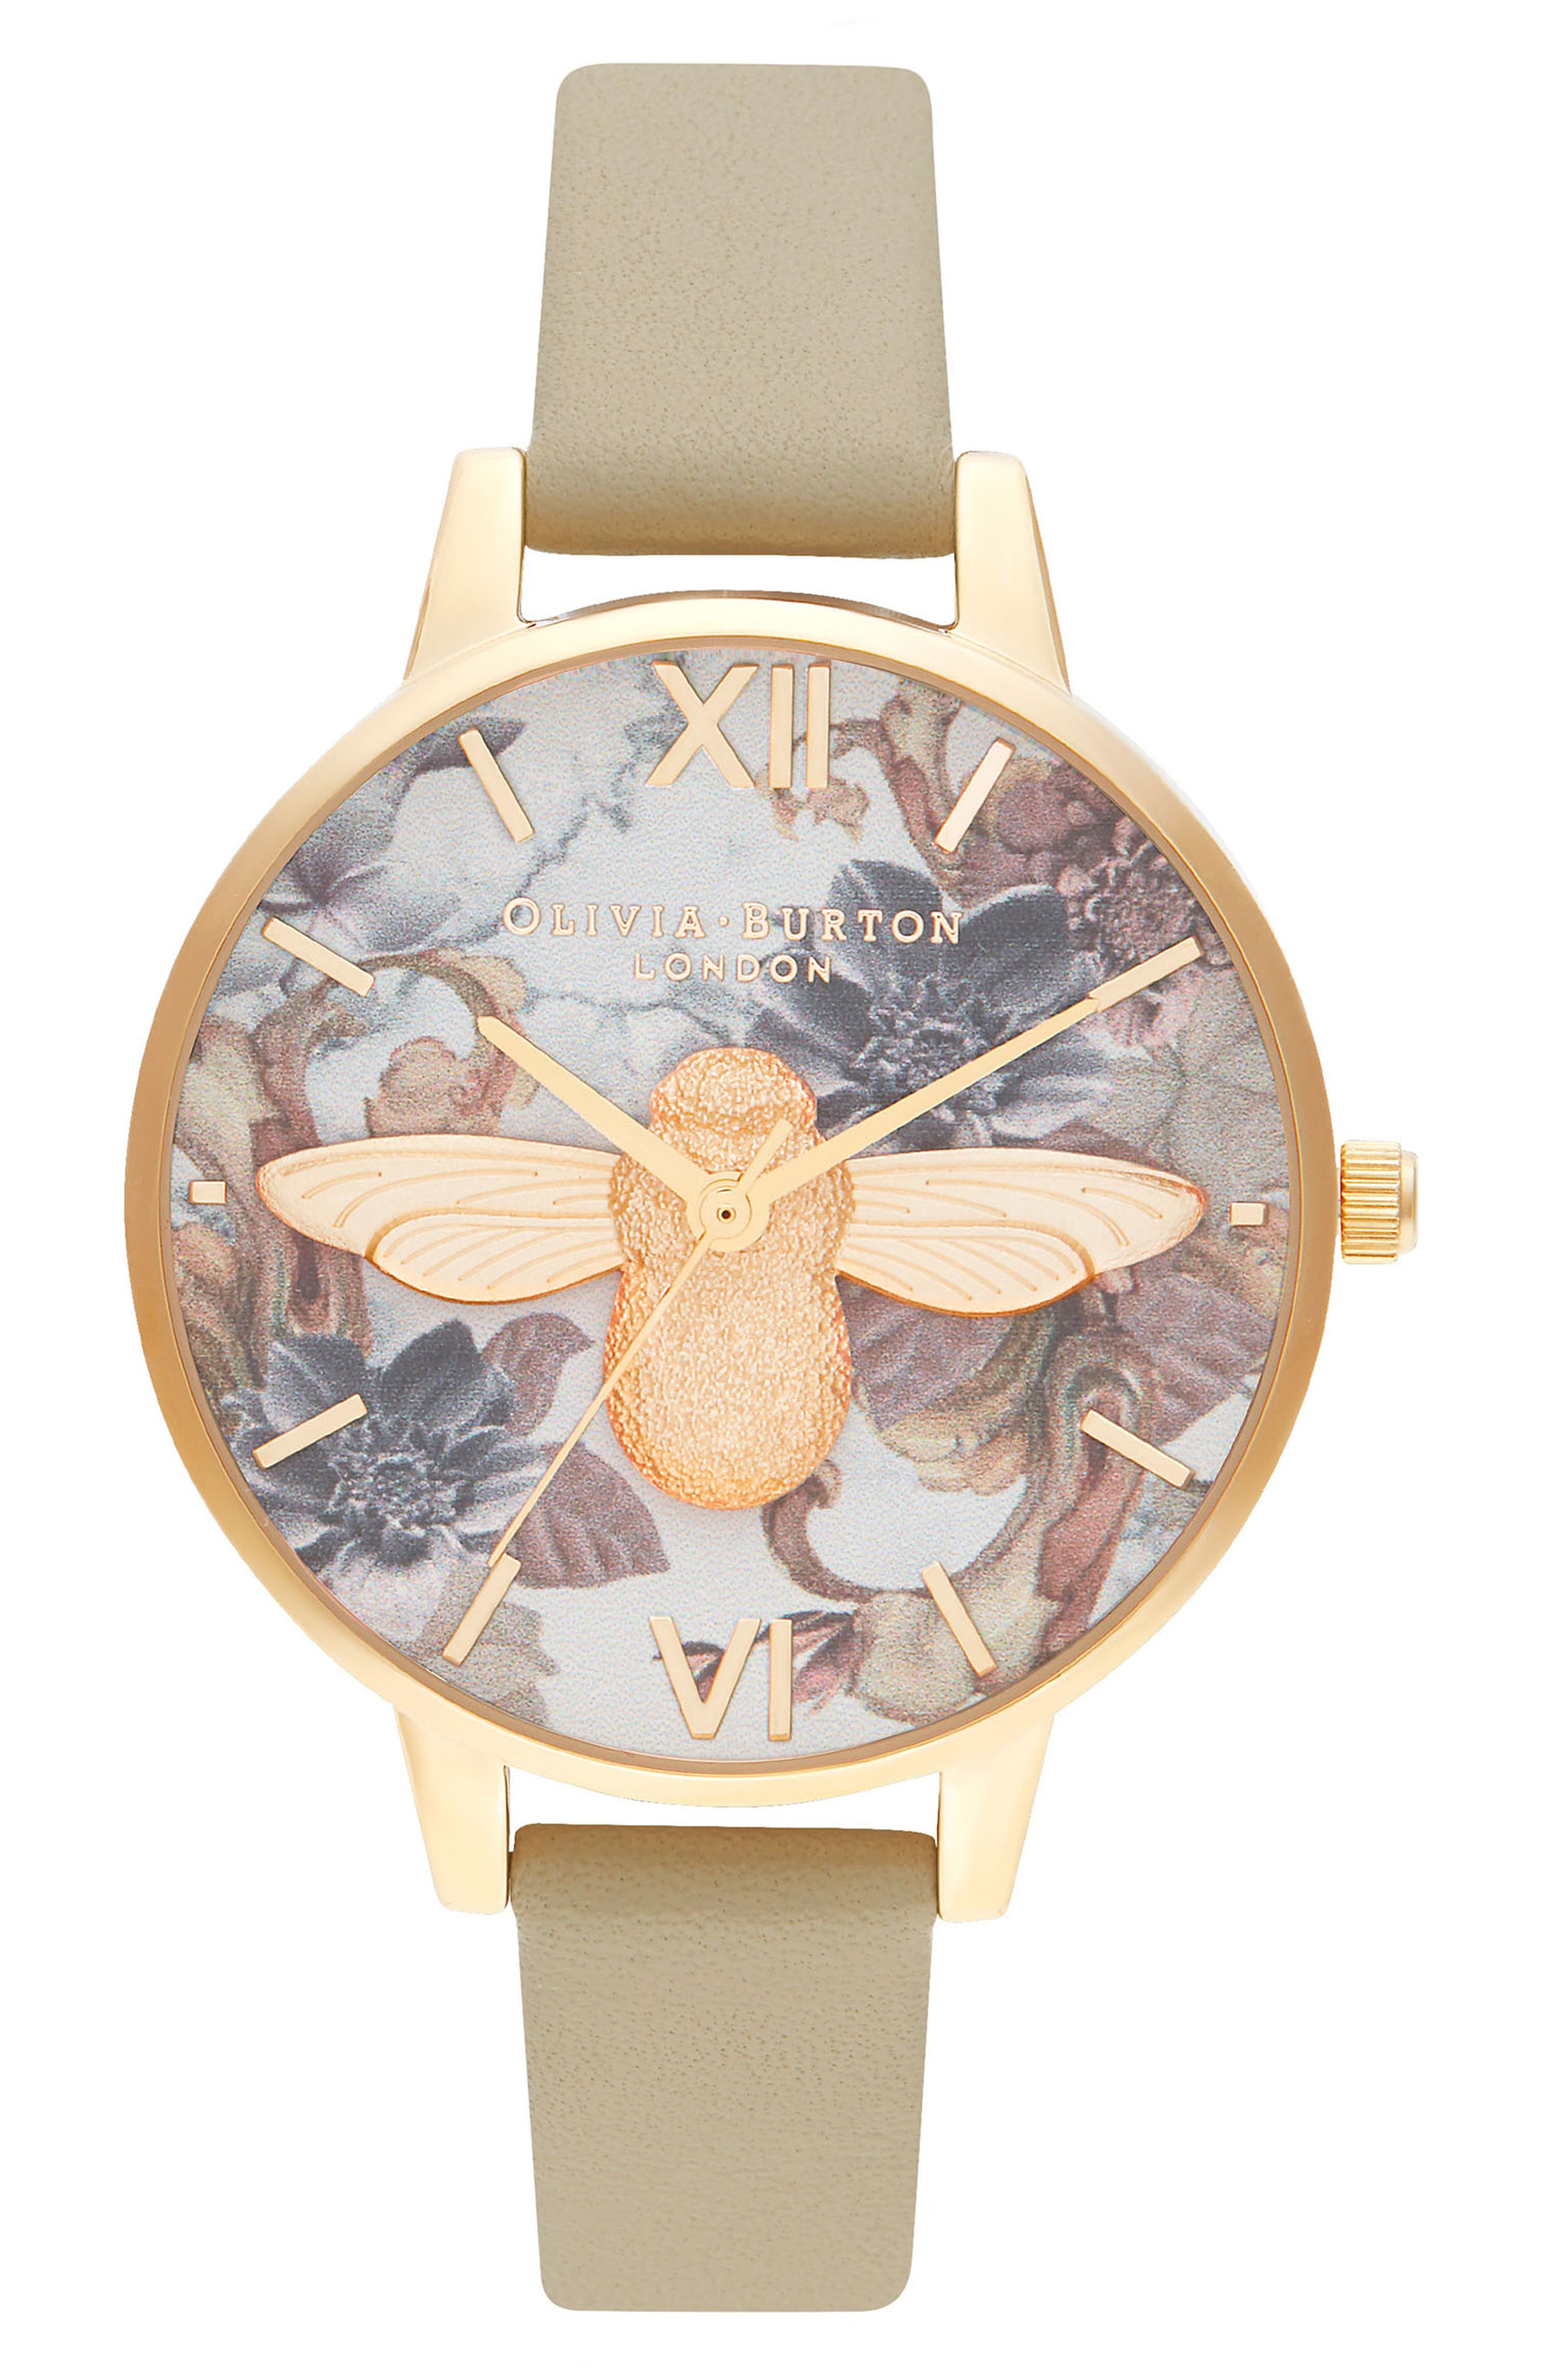 Image of OLIVIA BURTON Women's Marble Florals Leather Strap Watch, 34mm